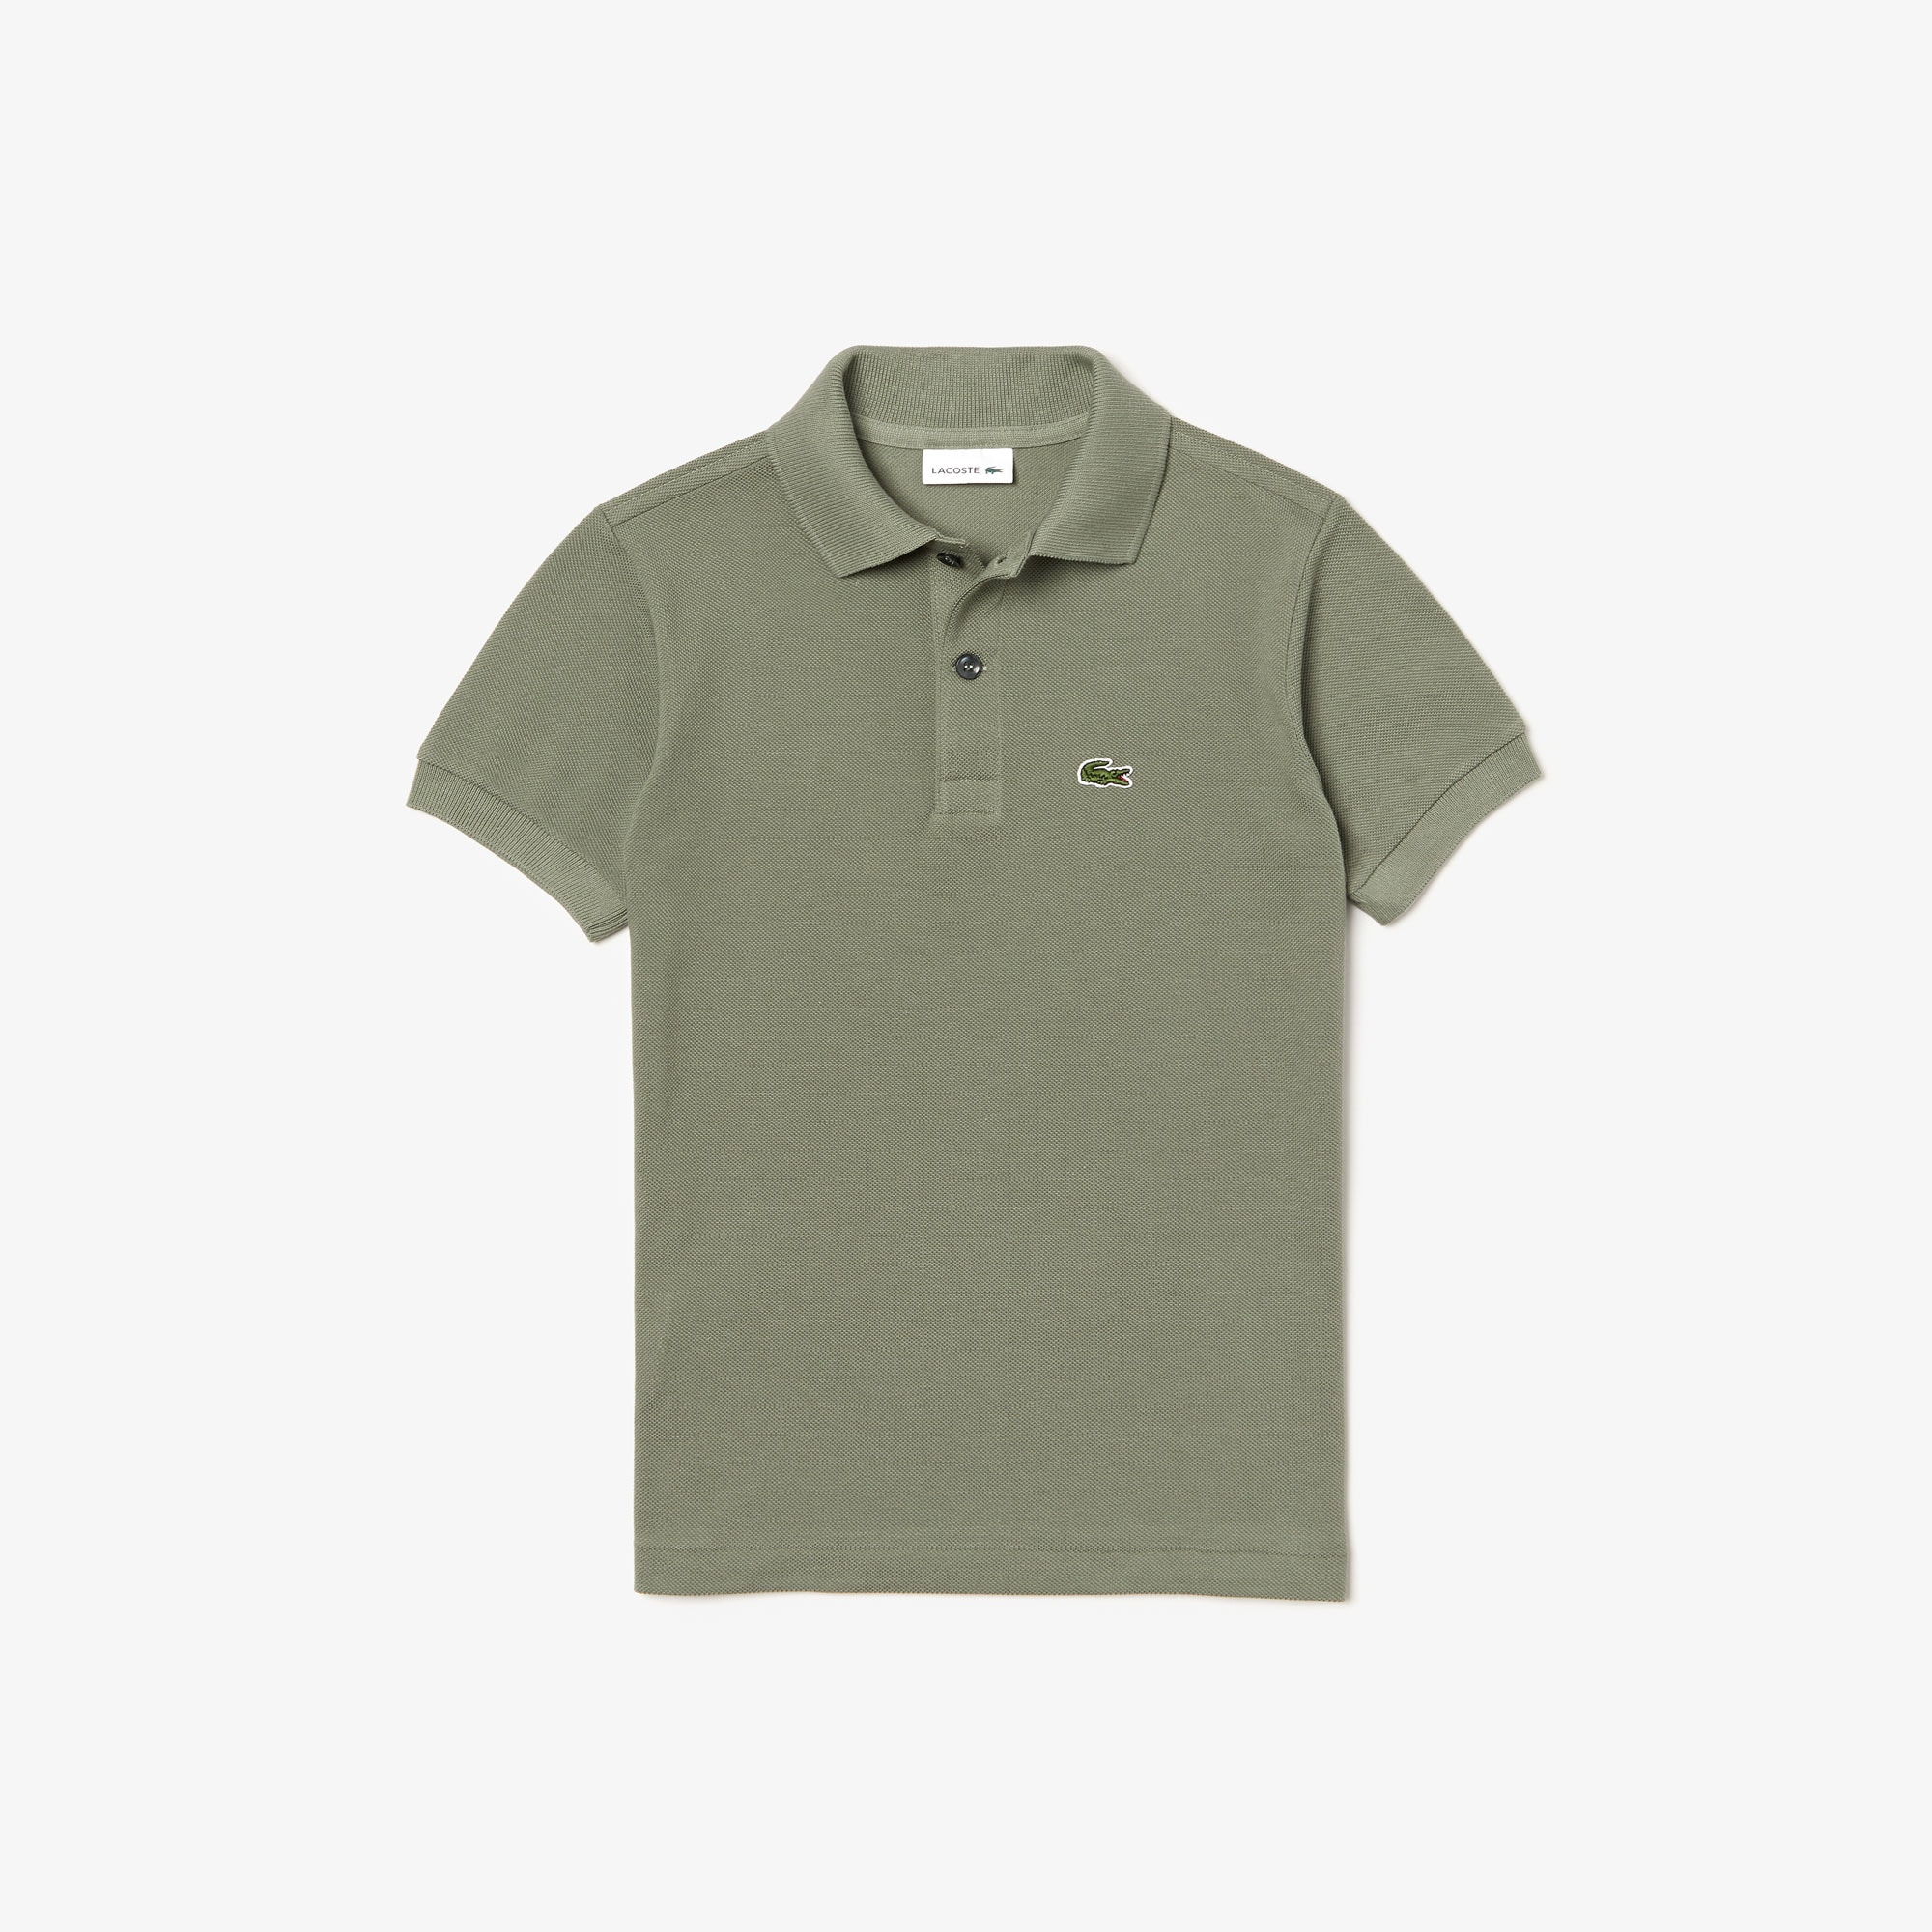 6b1853ebeddb1 Polo shirts, shoes, leather goods | LACOSTE Online Boutique